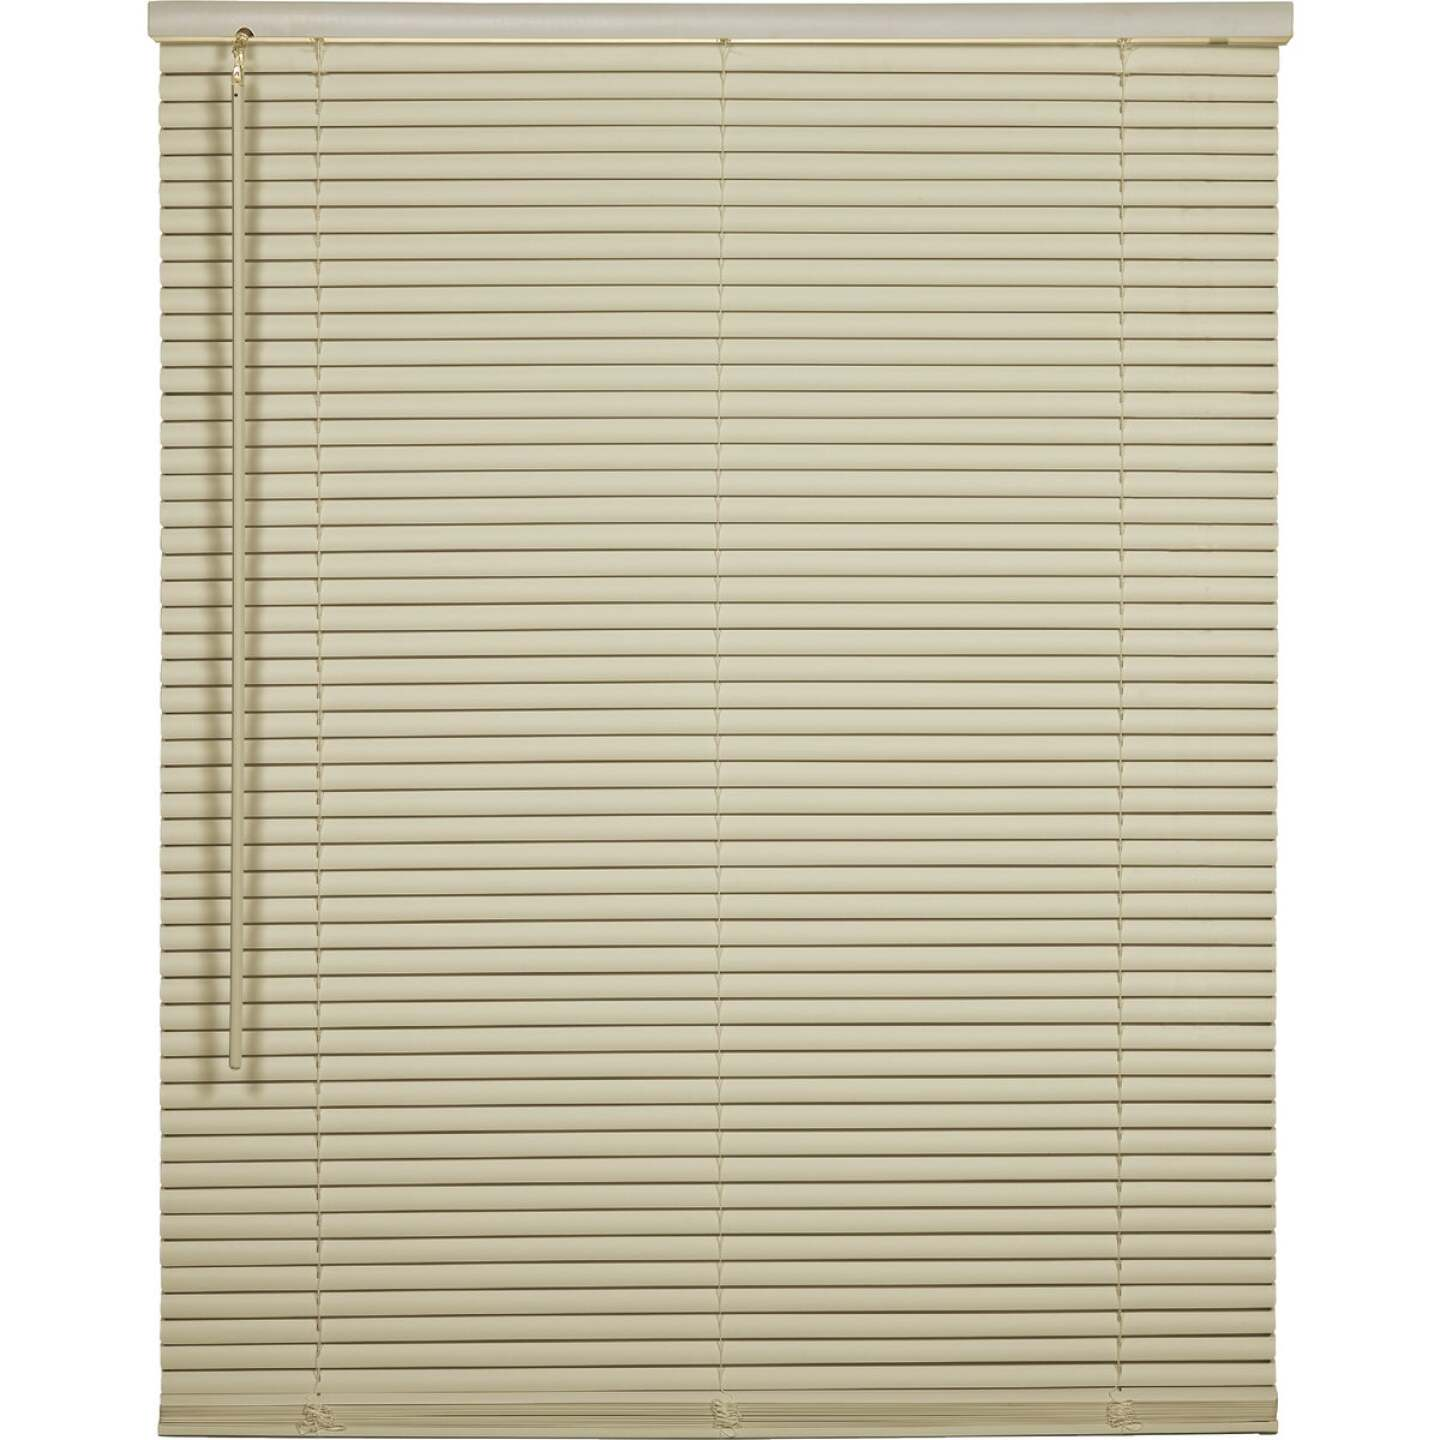 Home Impressions 43 In. x 64 In. x 1 In. Vanilla Vinyl Light Filtering Cordless Mini Blind Image 1